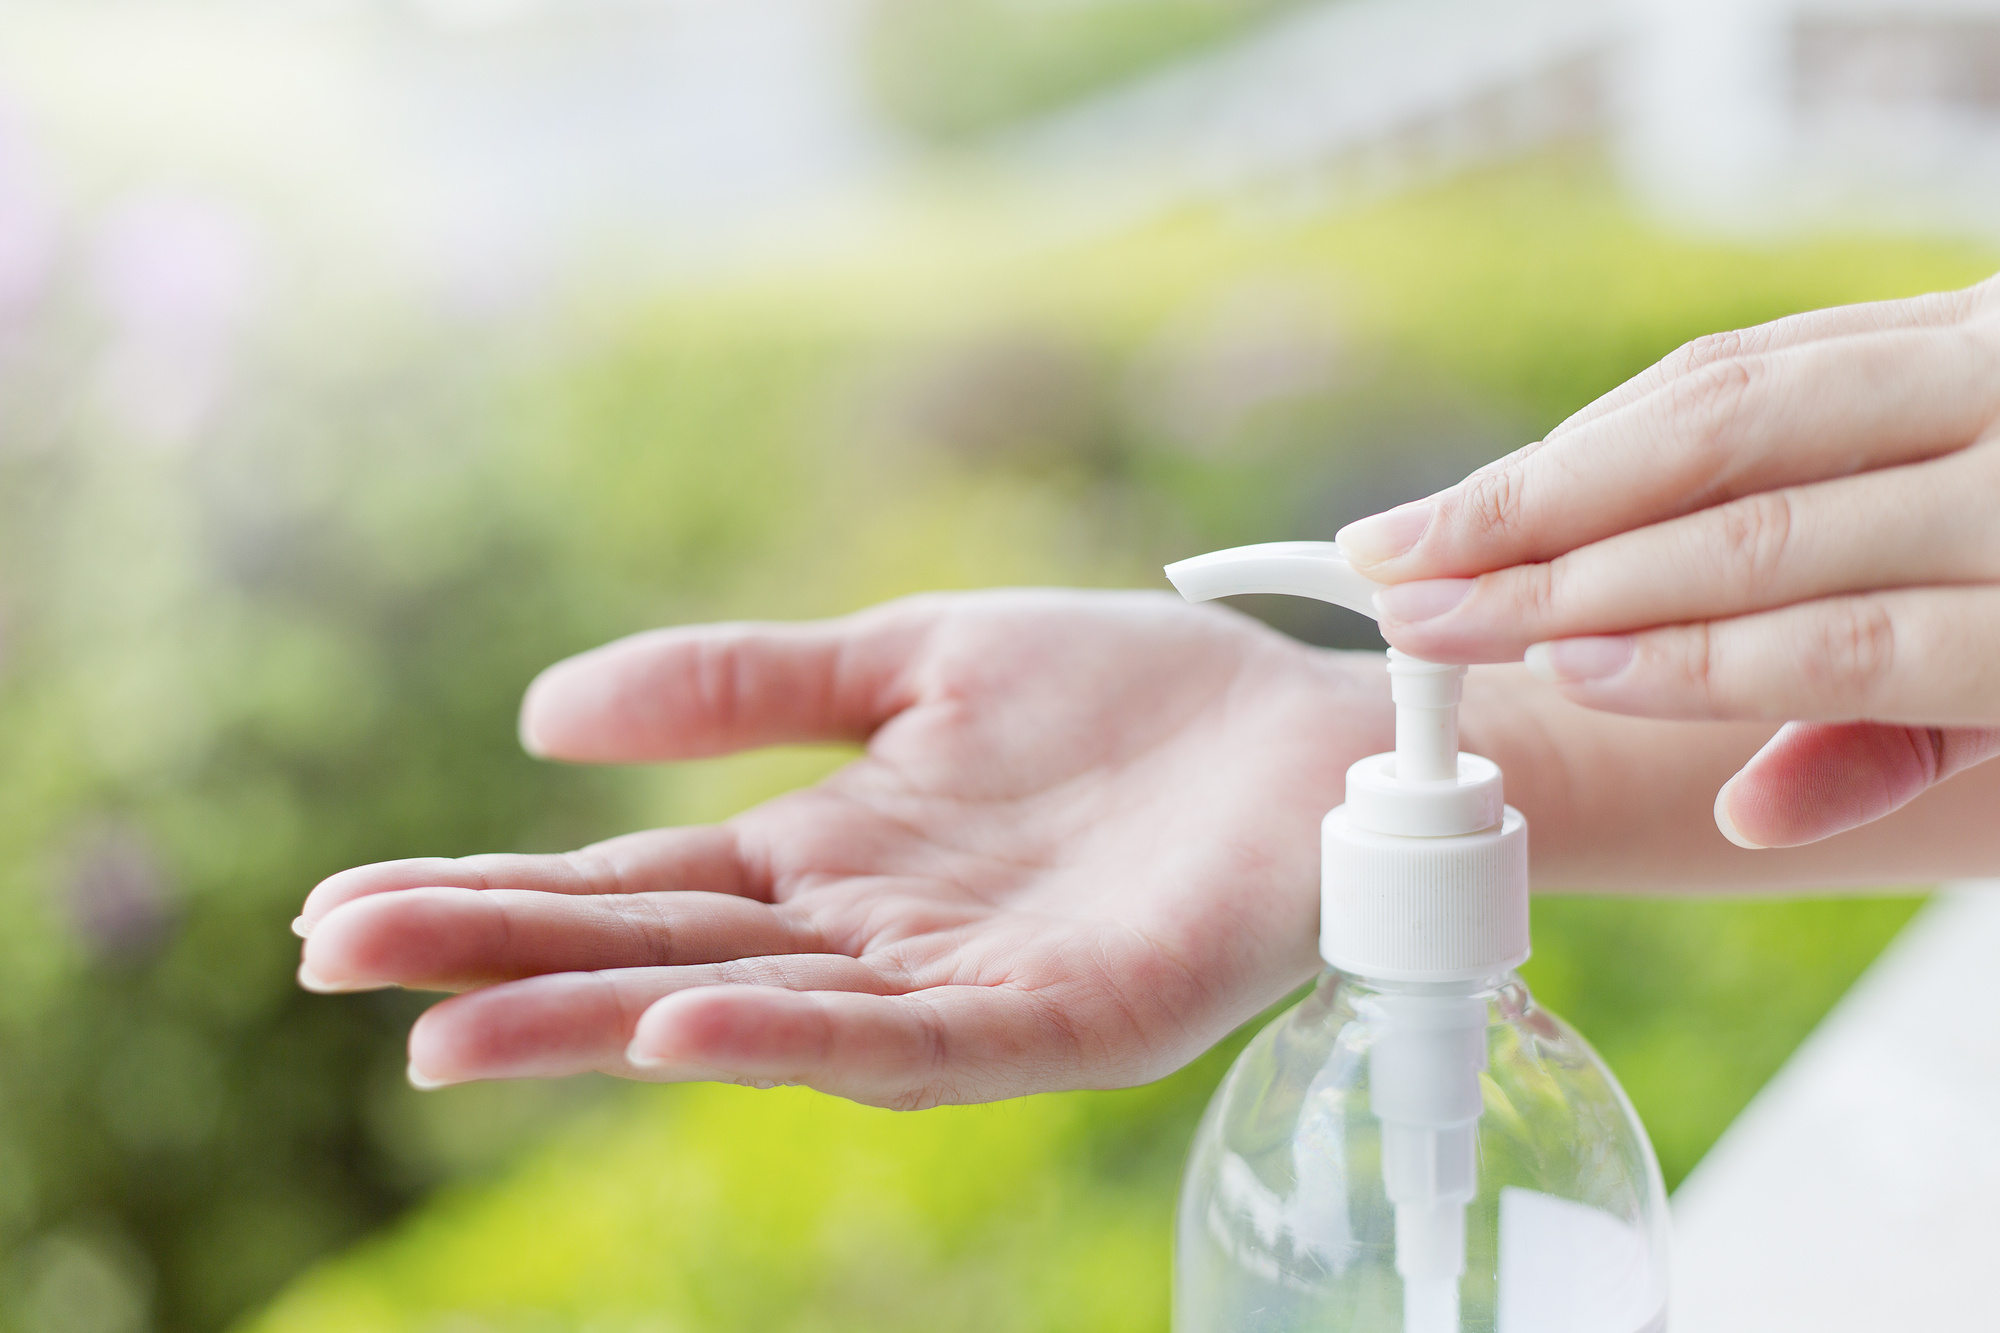 What Is Hand Sanitizer and How Can I Use It the Right Way?